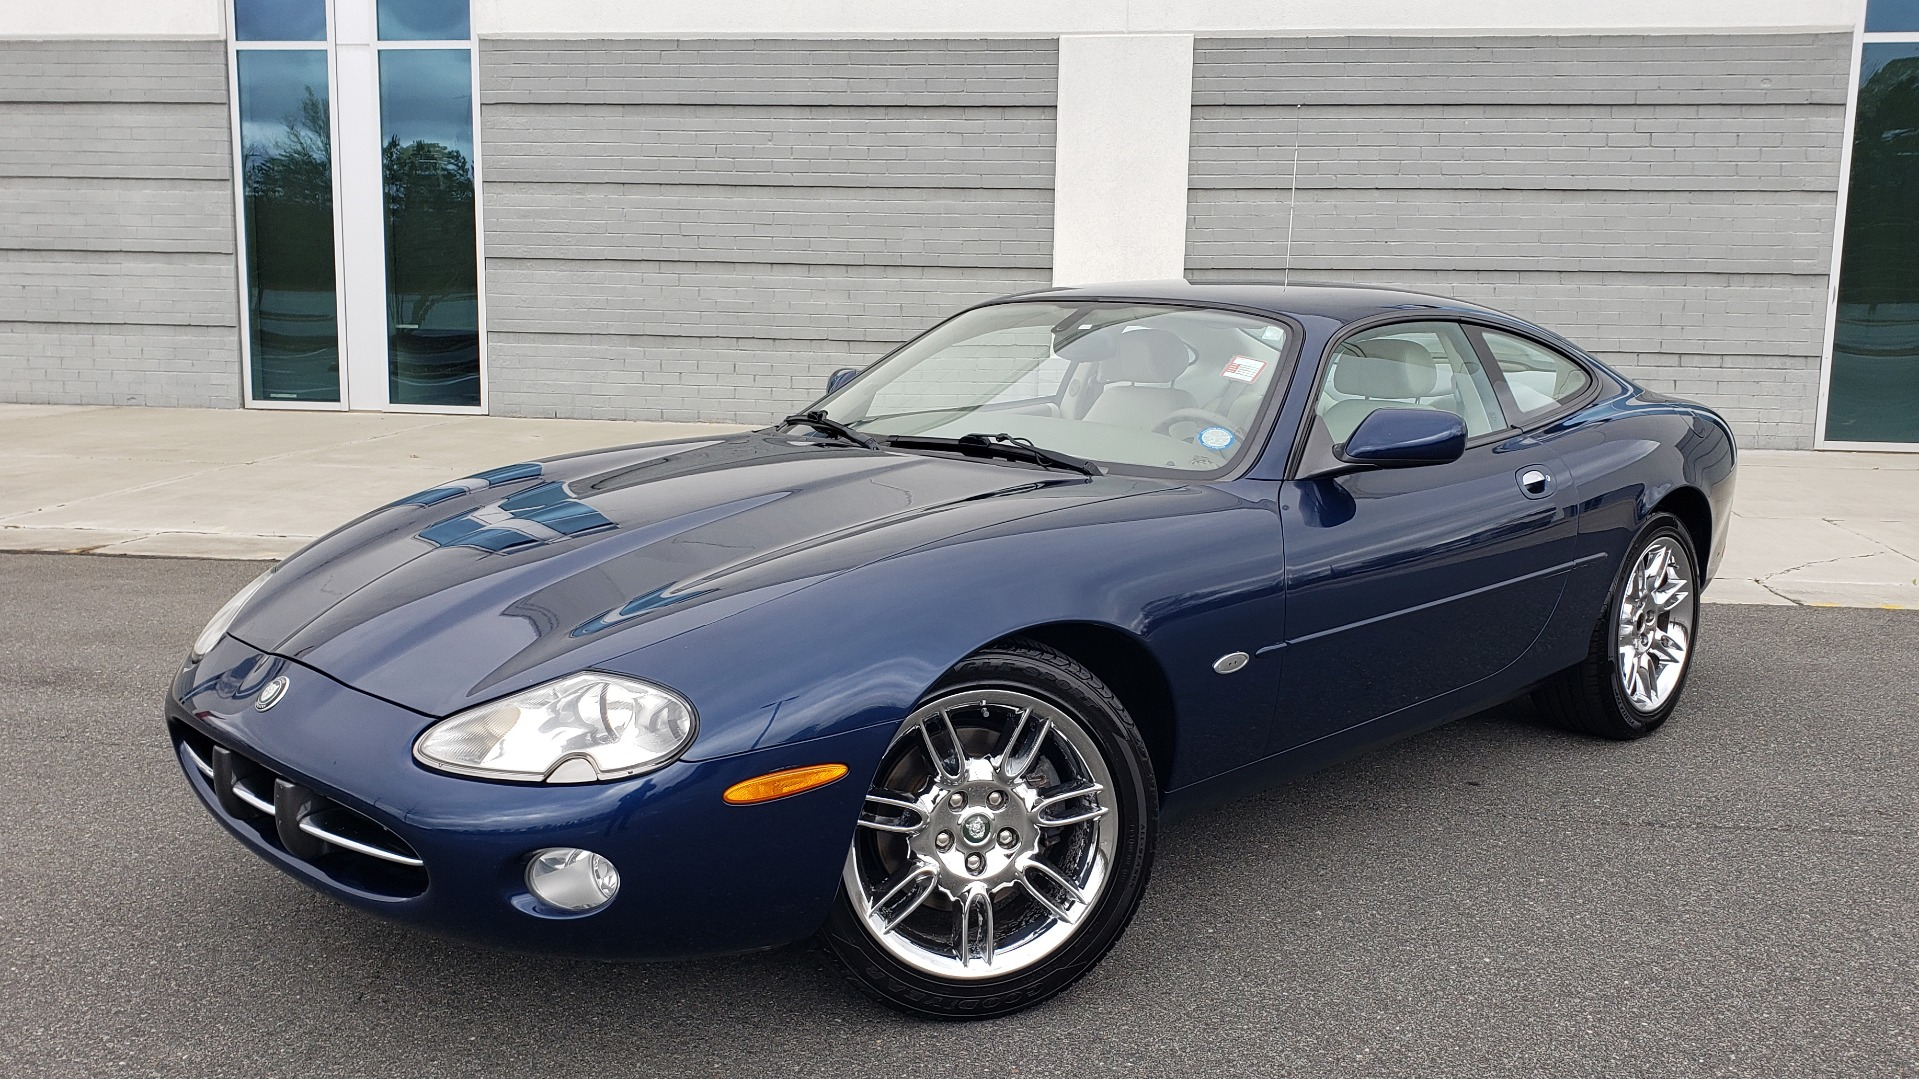 Used 2002 Jaguar XK8 COUPE / 4.0L V8 / 5-SPD AUTO / ALPINE SOUND / 18IN CHROME WHEELS for sale $16,450 at Formula Imports in Charlotte NC 28227 1